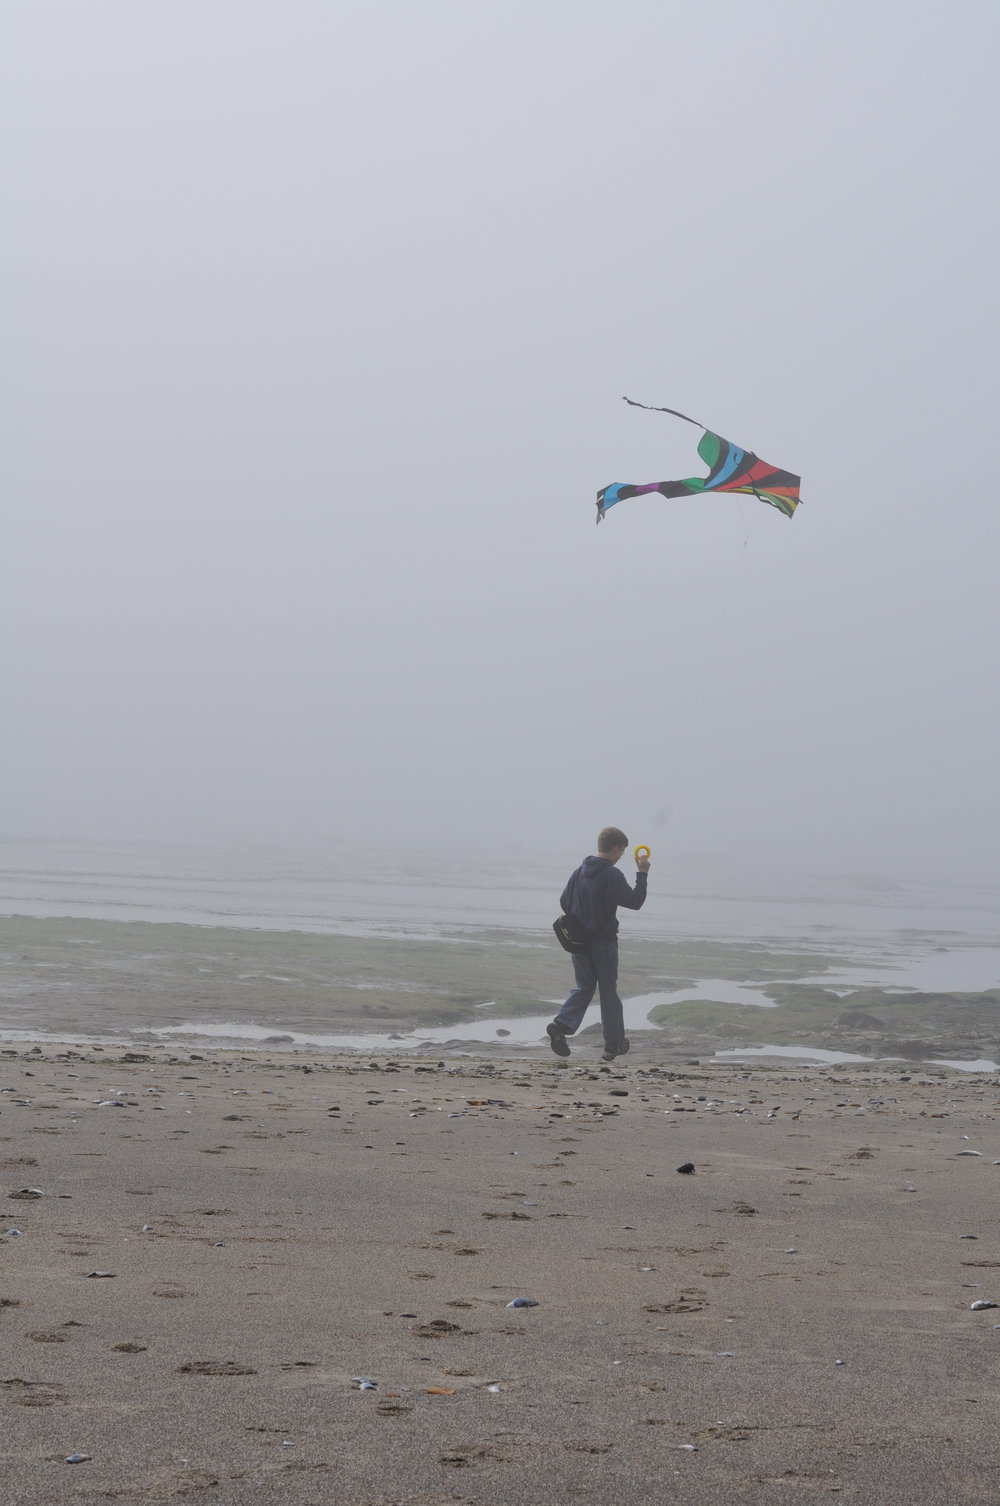 Kite flying on the Oregon Coast